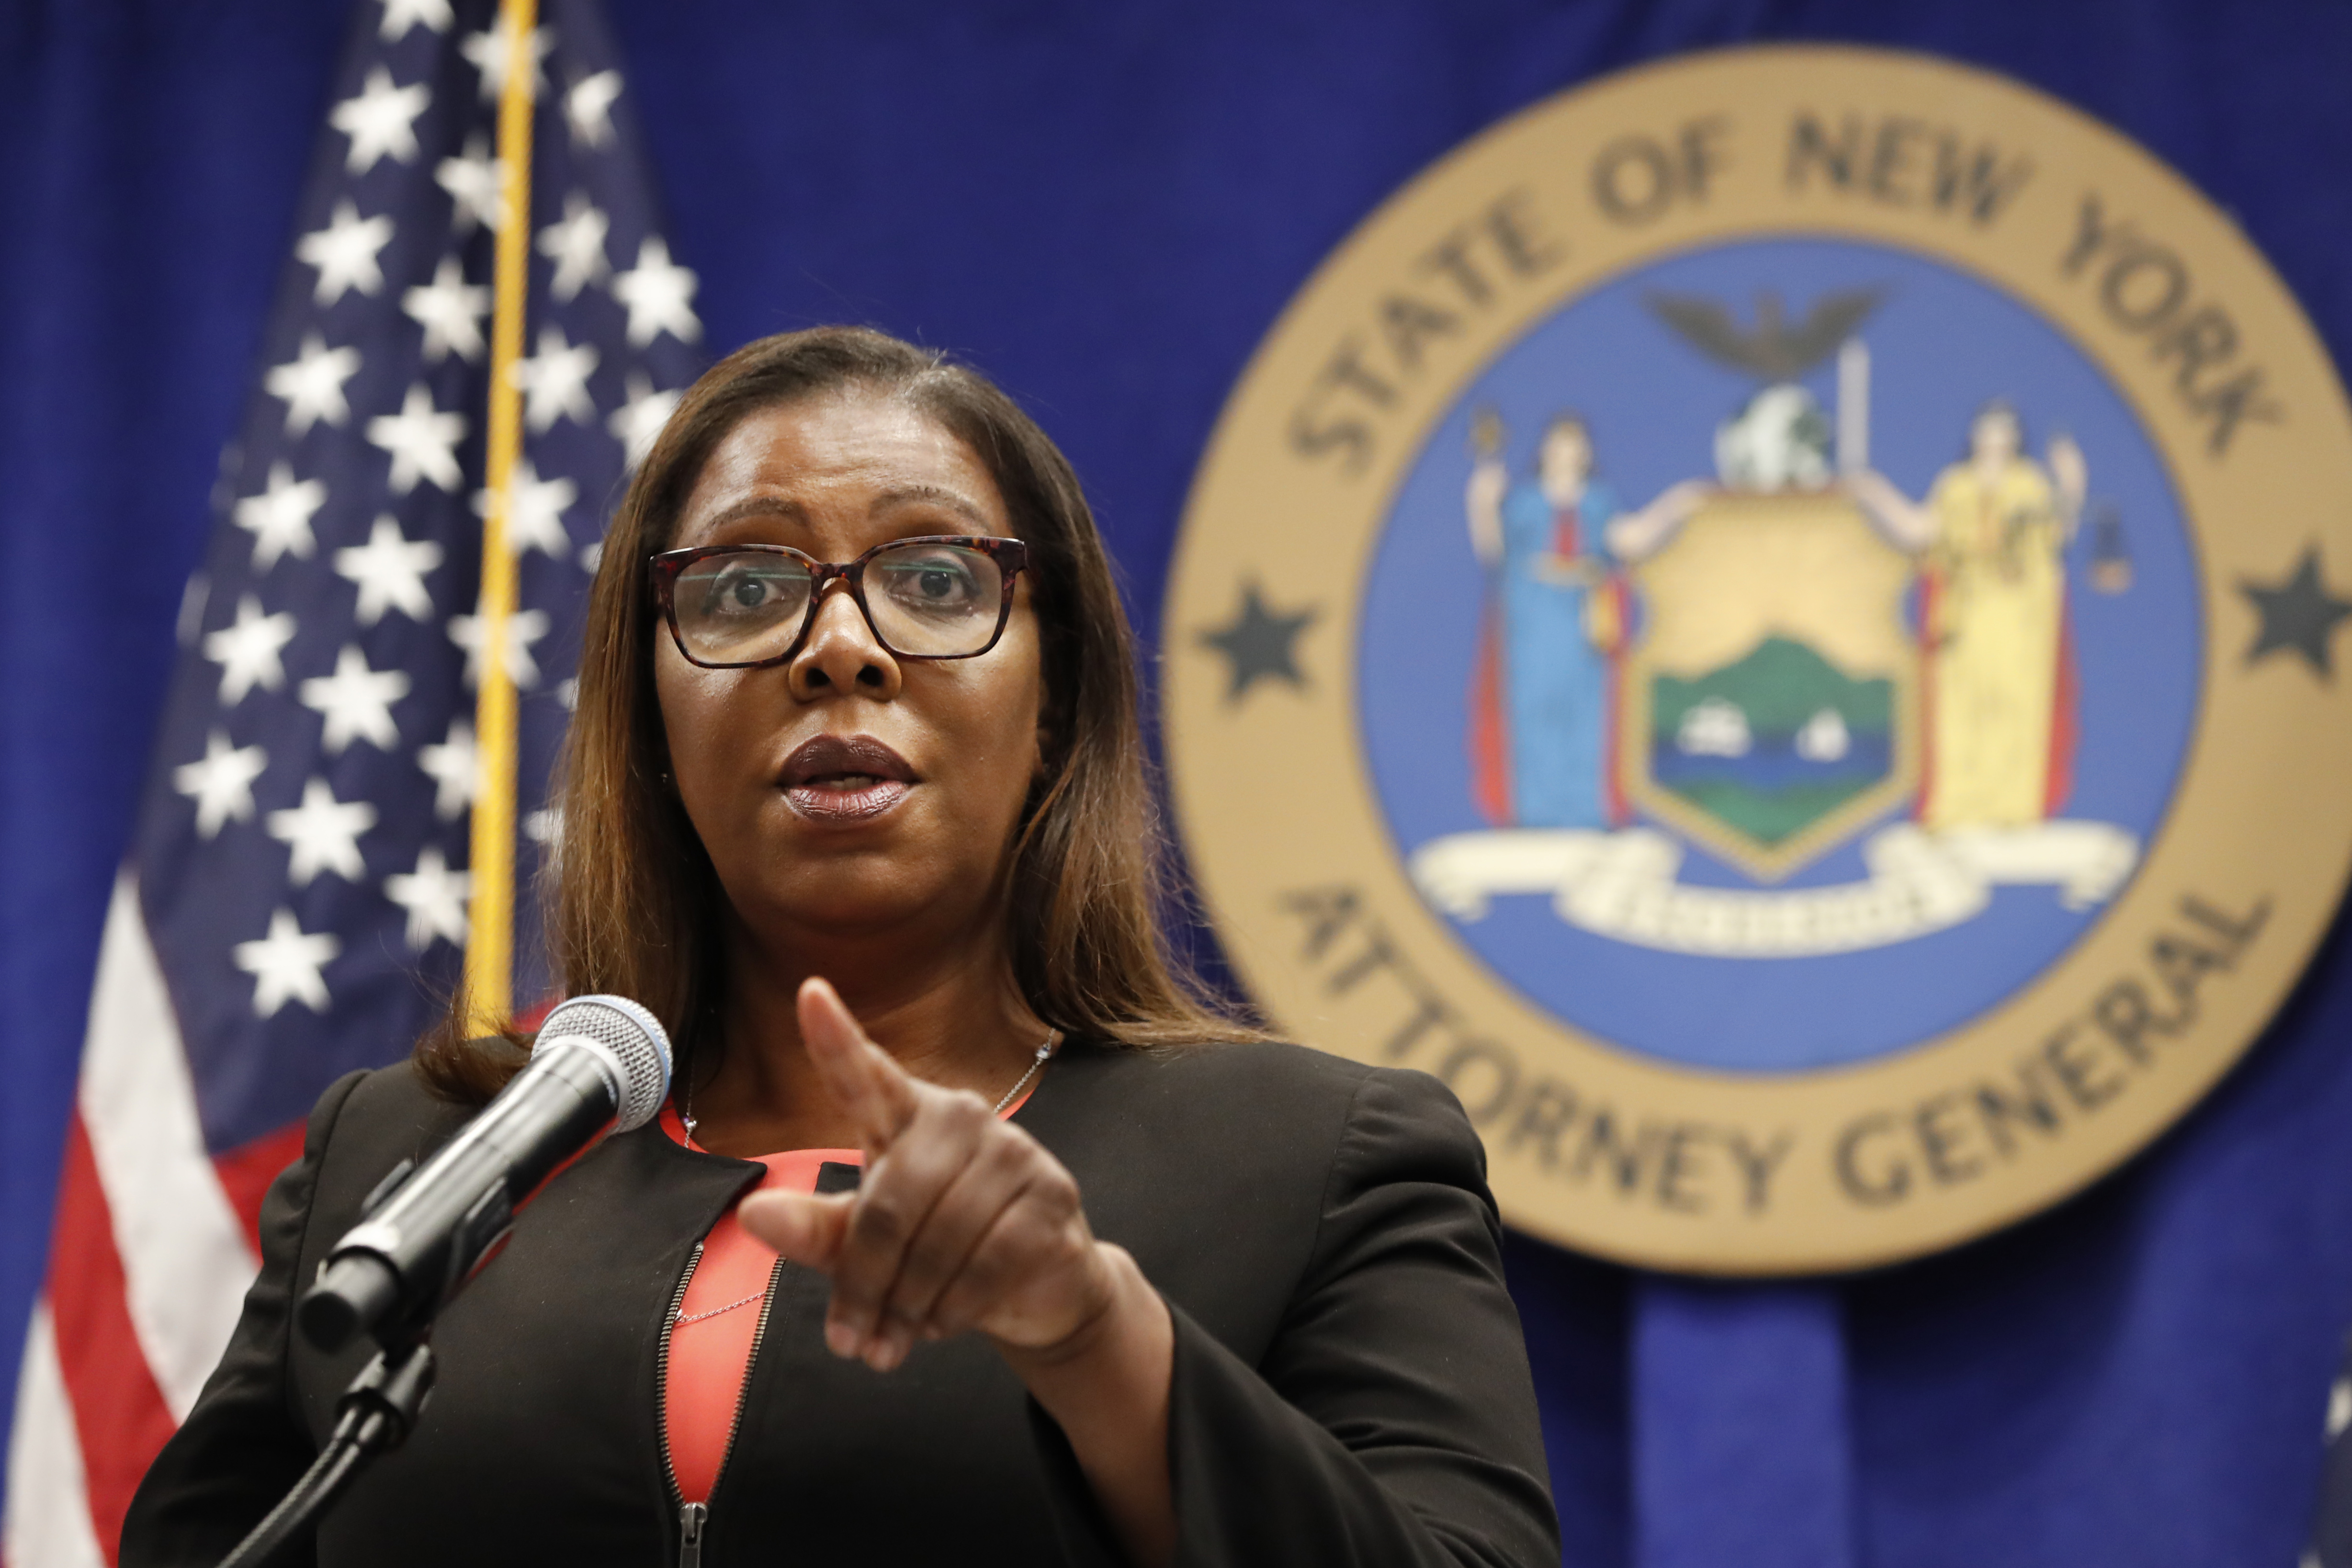 New York State Attorney General Letitia James takes a question after announcing that the state is suing the National Rifle Association during a press conference, Aug. 6, 2020, in New York.